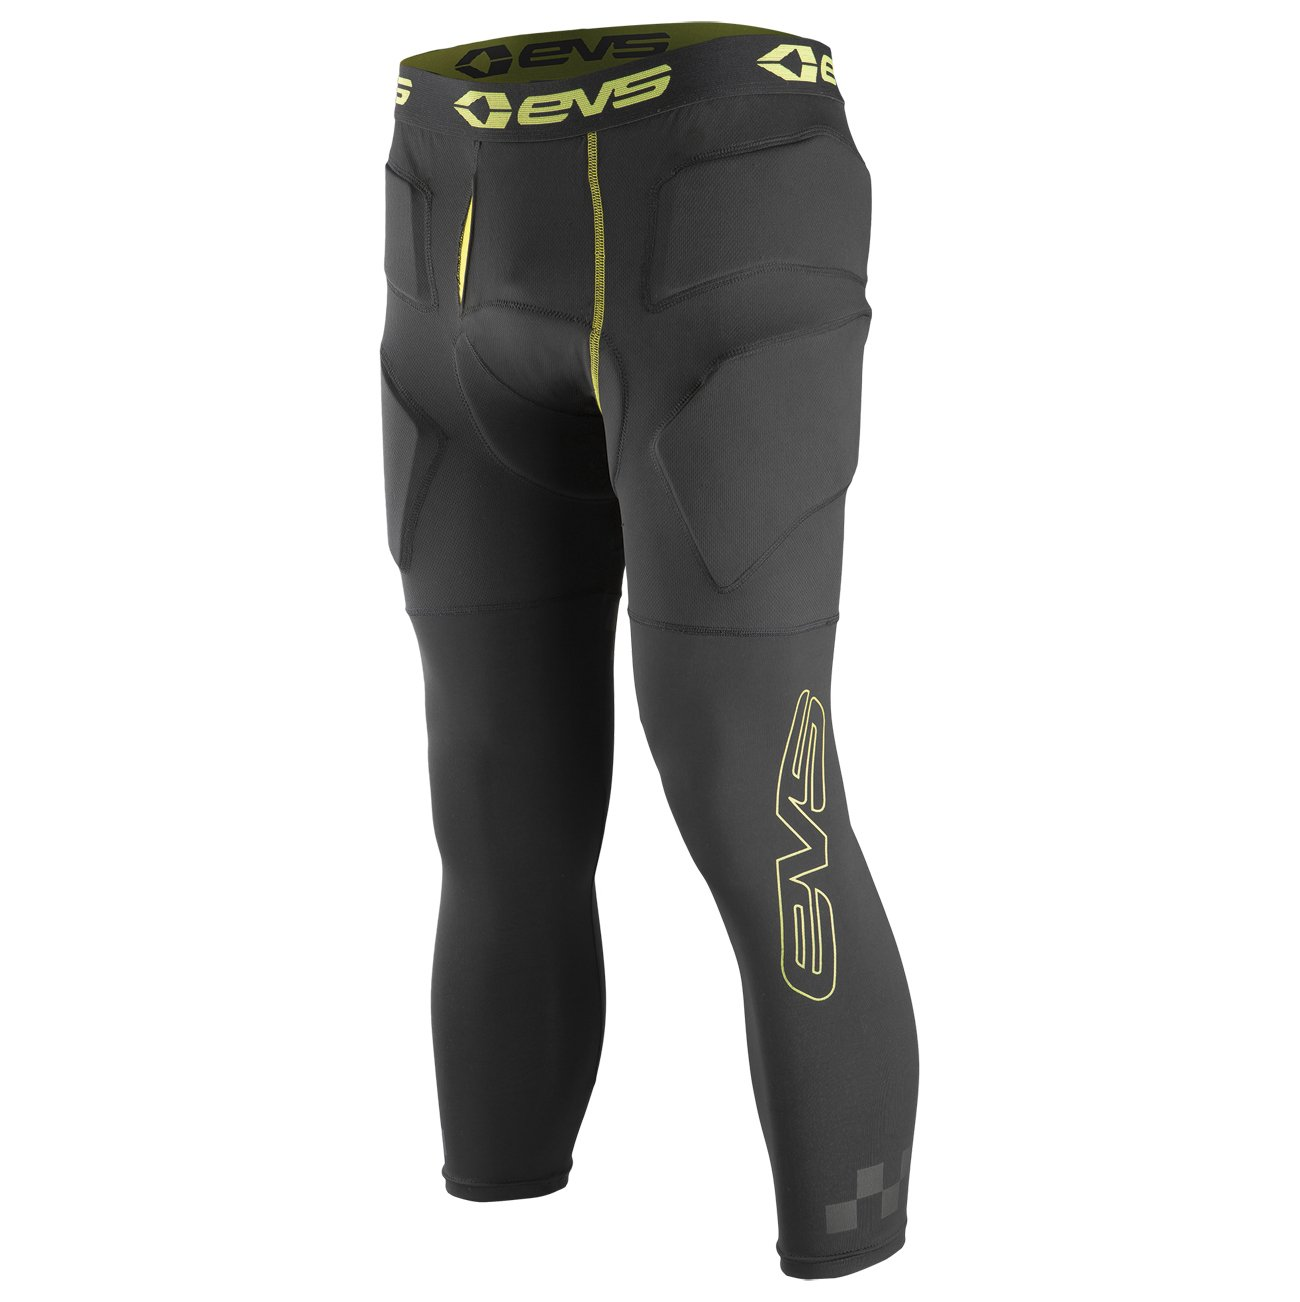 EVS Sports Unisex-Adult Tug Bottom Impact 3/4th Pants (Black/Hi-Viz, X-Large/XX-Large) by EVS Sports (Image #1)